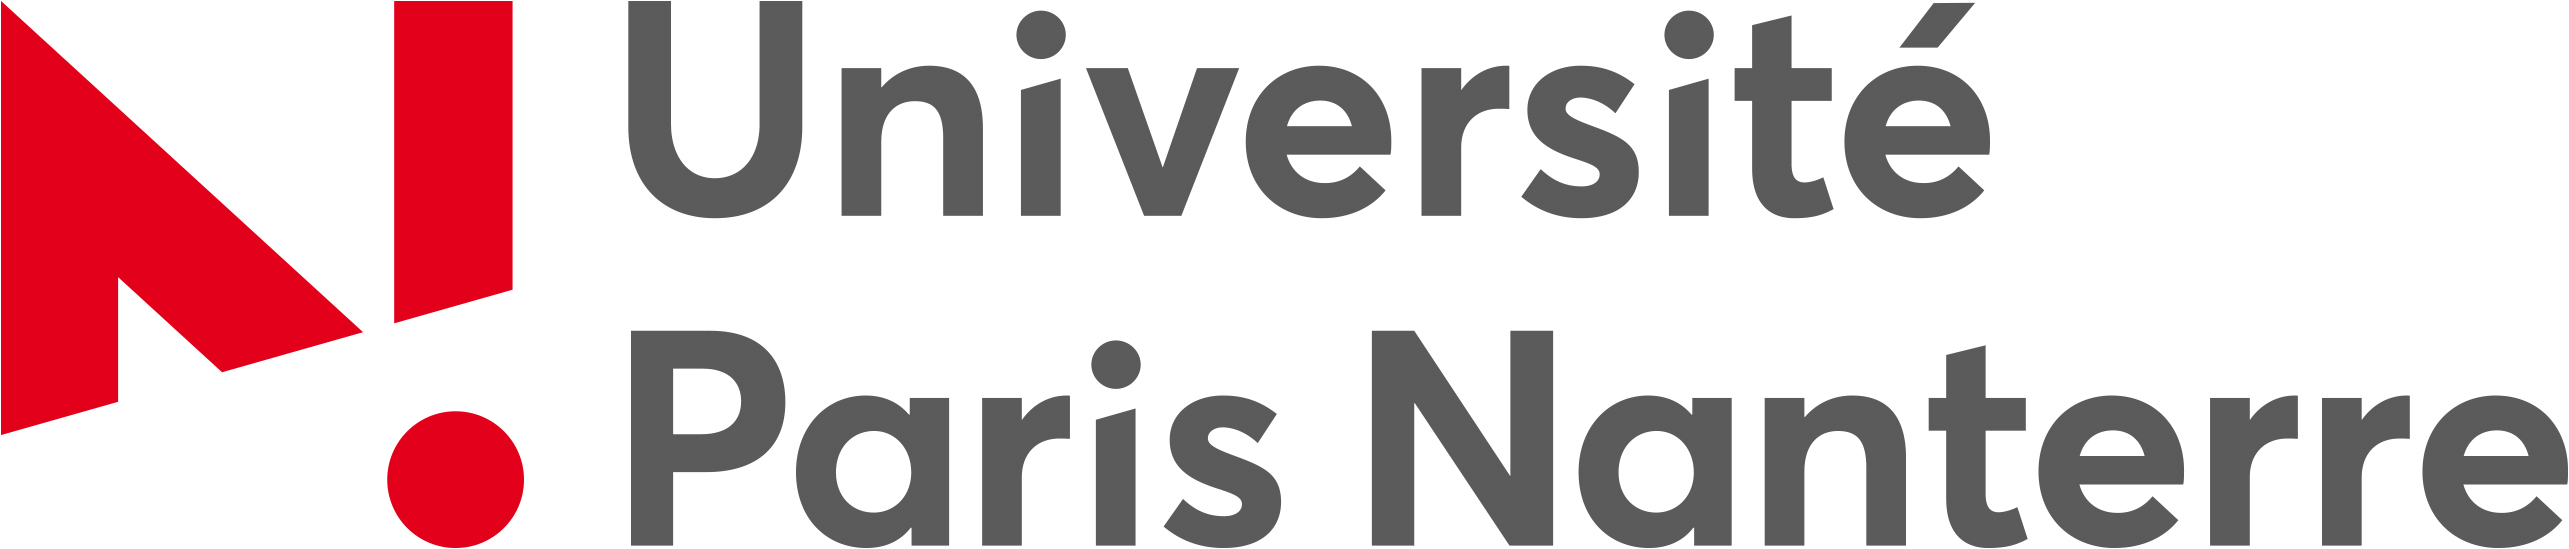 logo-université-paris-nanterre